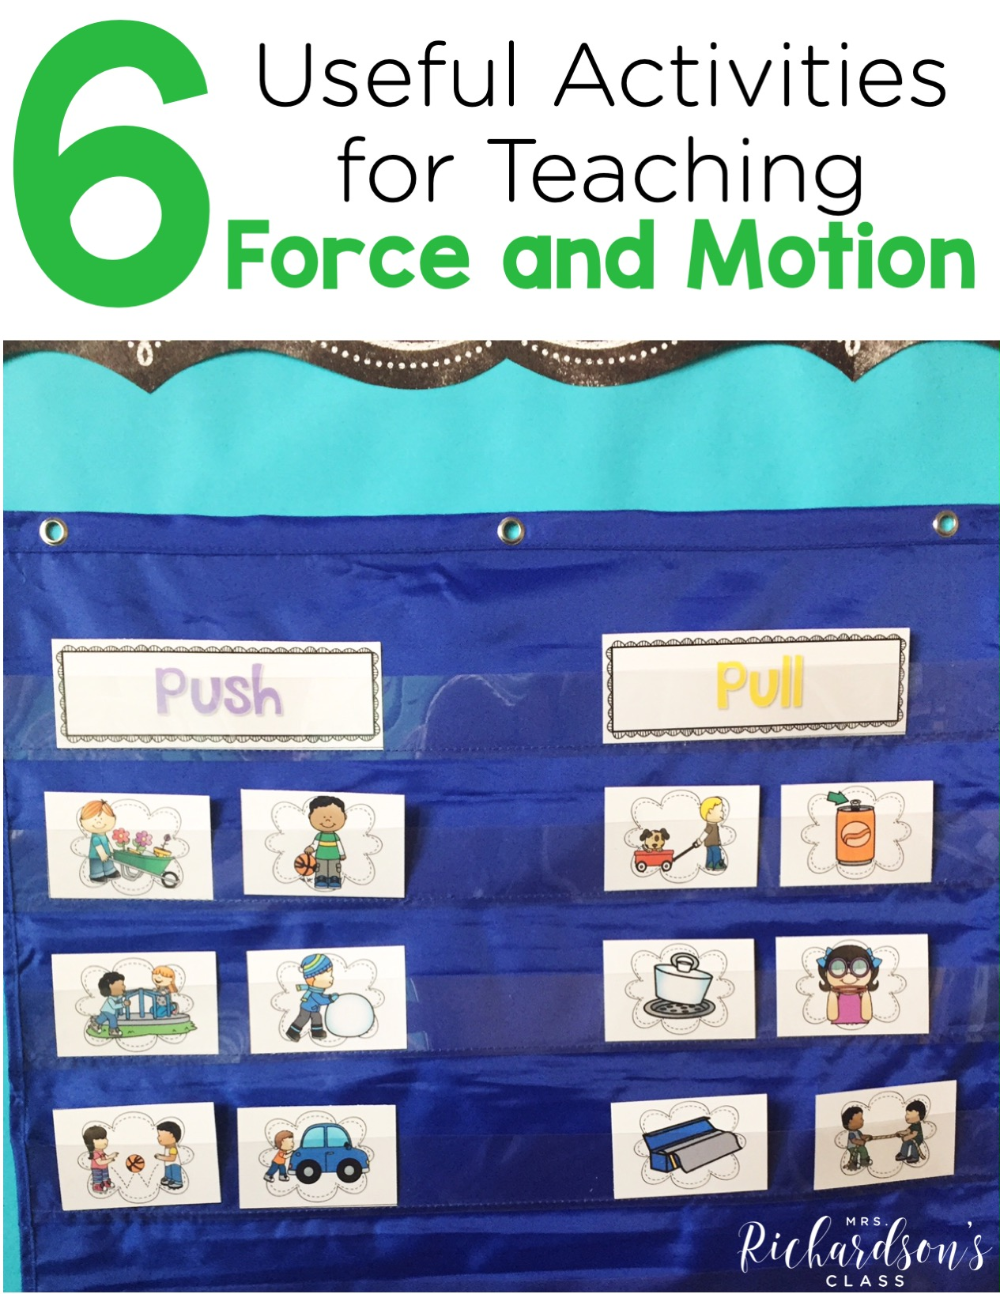 Our School Uses The Next Generation Science Standards One Of The Standards Includes Force And Motion A Kindergarten Science Force And Motion Preschool Science [ 1056 x 816 Pixel ]